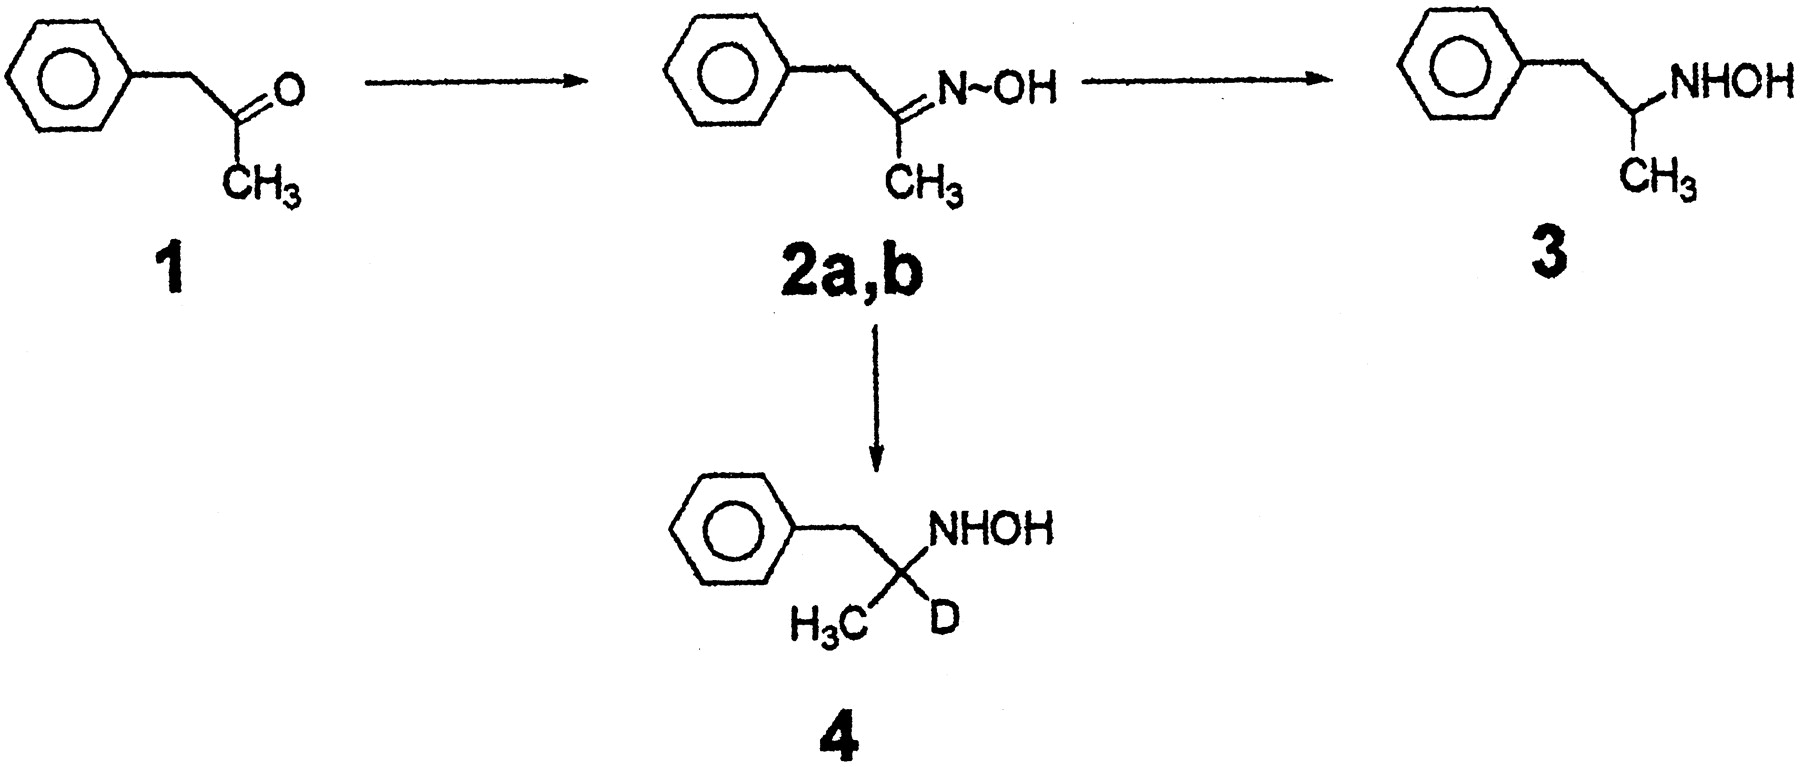 N-Oxygenation of Amphetamine and Methamphetamine by the